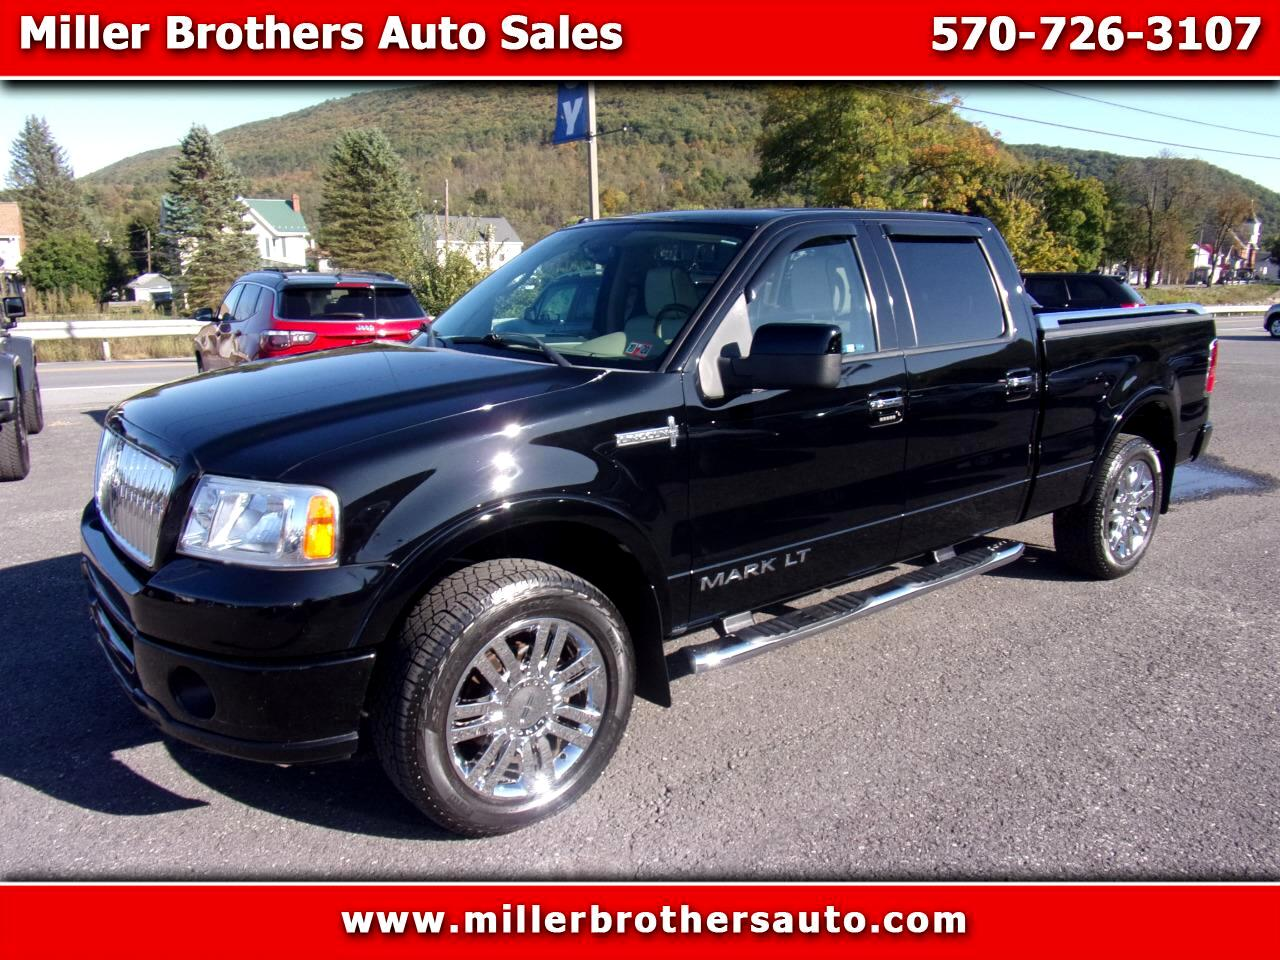 Lincoln Mark LT 4WD 2008